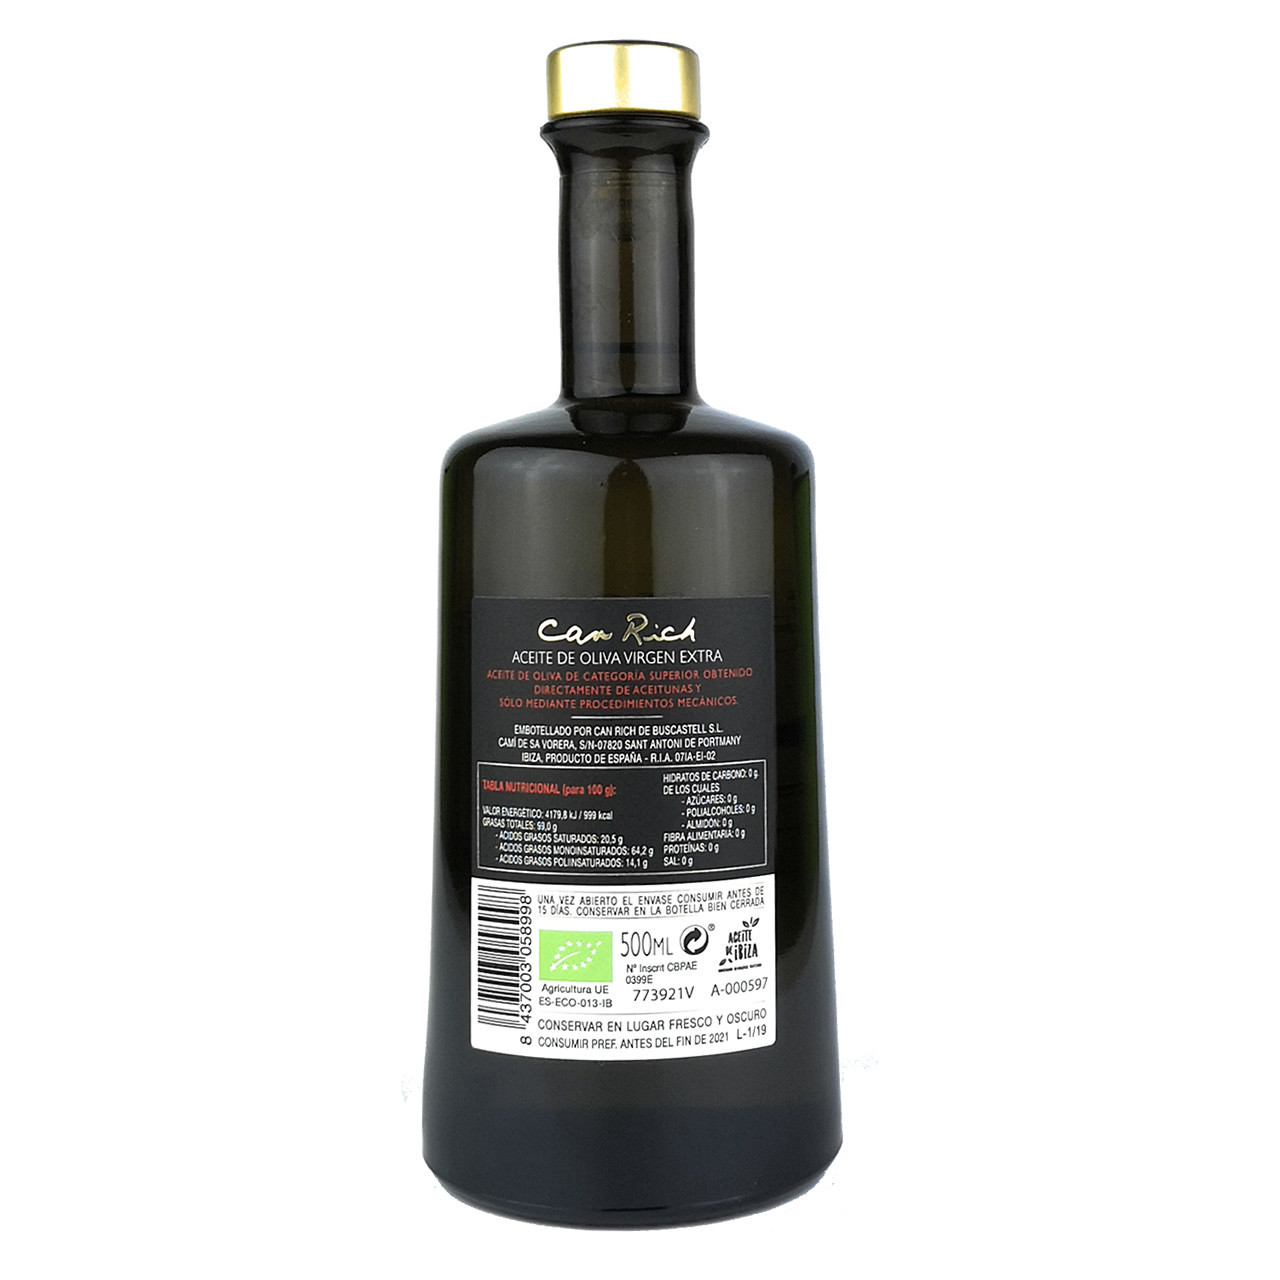 Extra Natives Bio Olivenöl (500 ml) - Can Rich Rücseite